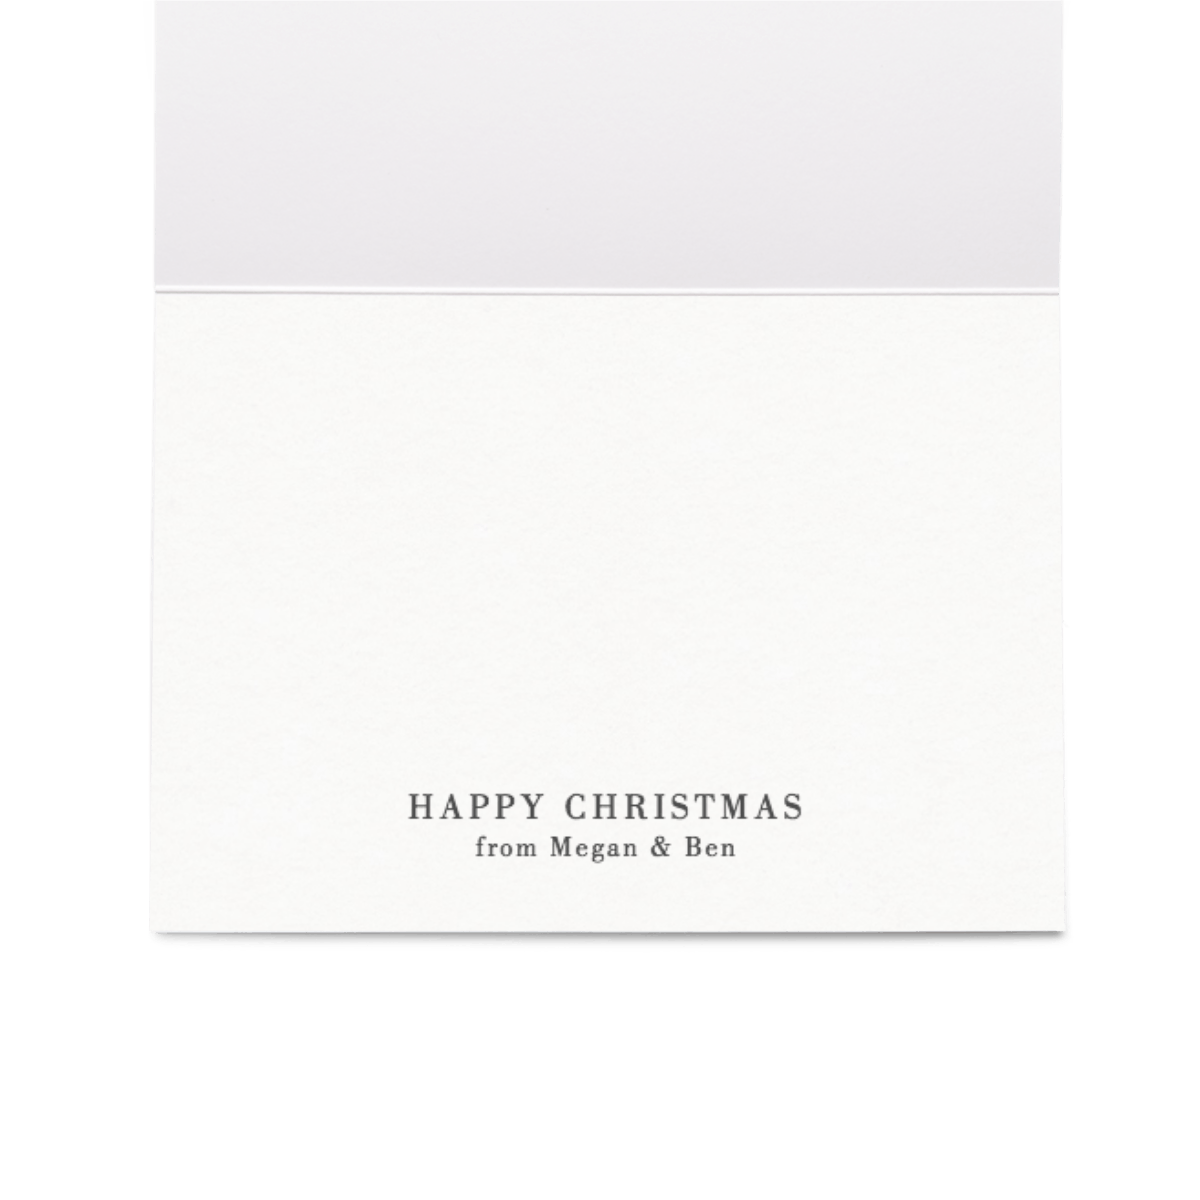 Https%3a%2f%2fwww.papier.com%2fproduct image%2f8410%2f20%2freindeer 2085 inside 1541093616.png?ixlib=rb 1.1